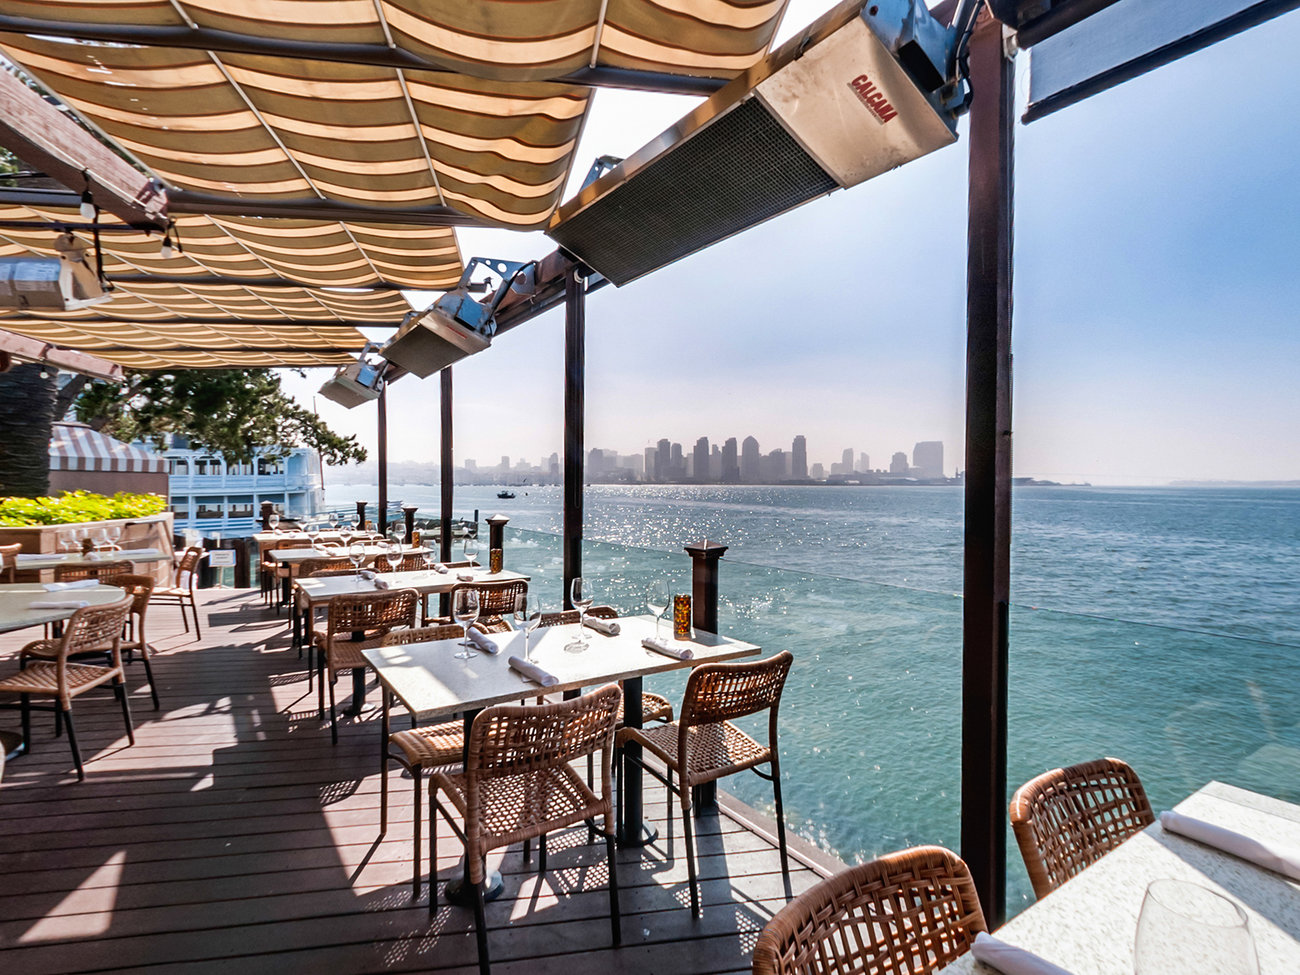 Best Seafood Restaurants On Coronado Island